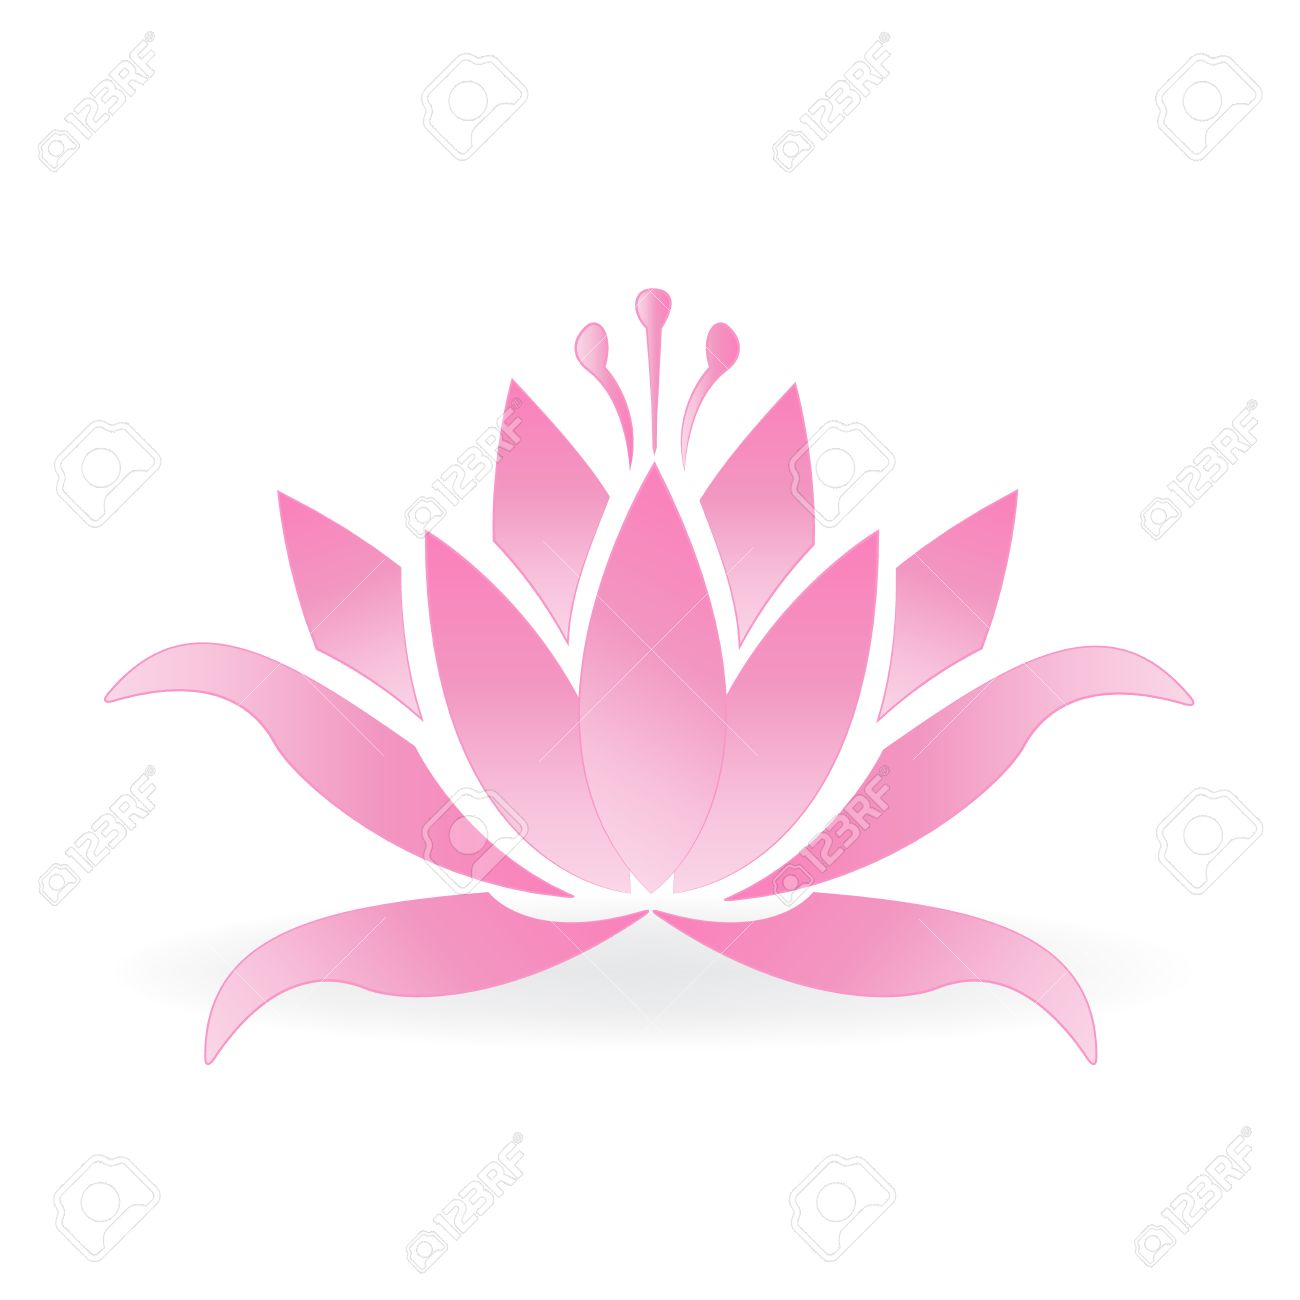 Pink lotus flower logo icon vector design royalty free cliparts pink lotus flower logo icon vector design stock vector 75504912 dhlflorist Images